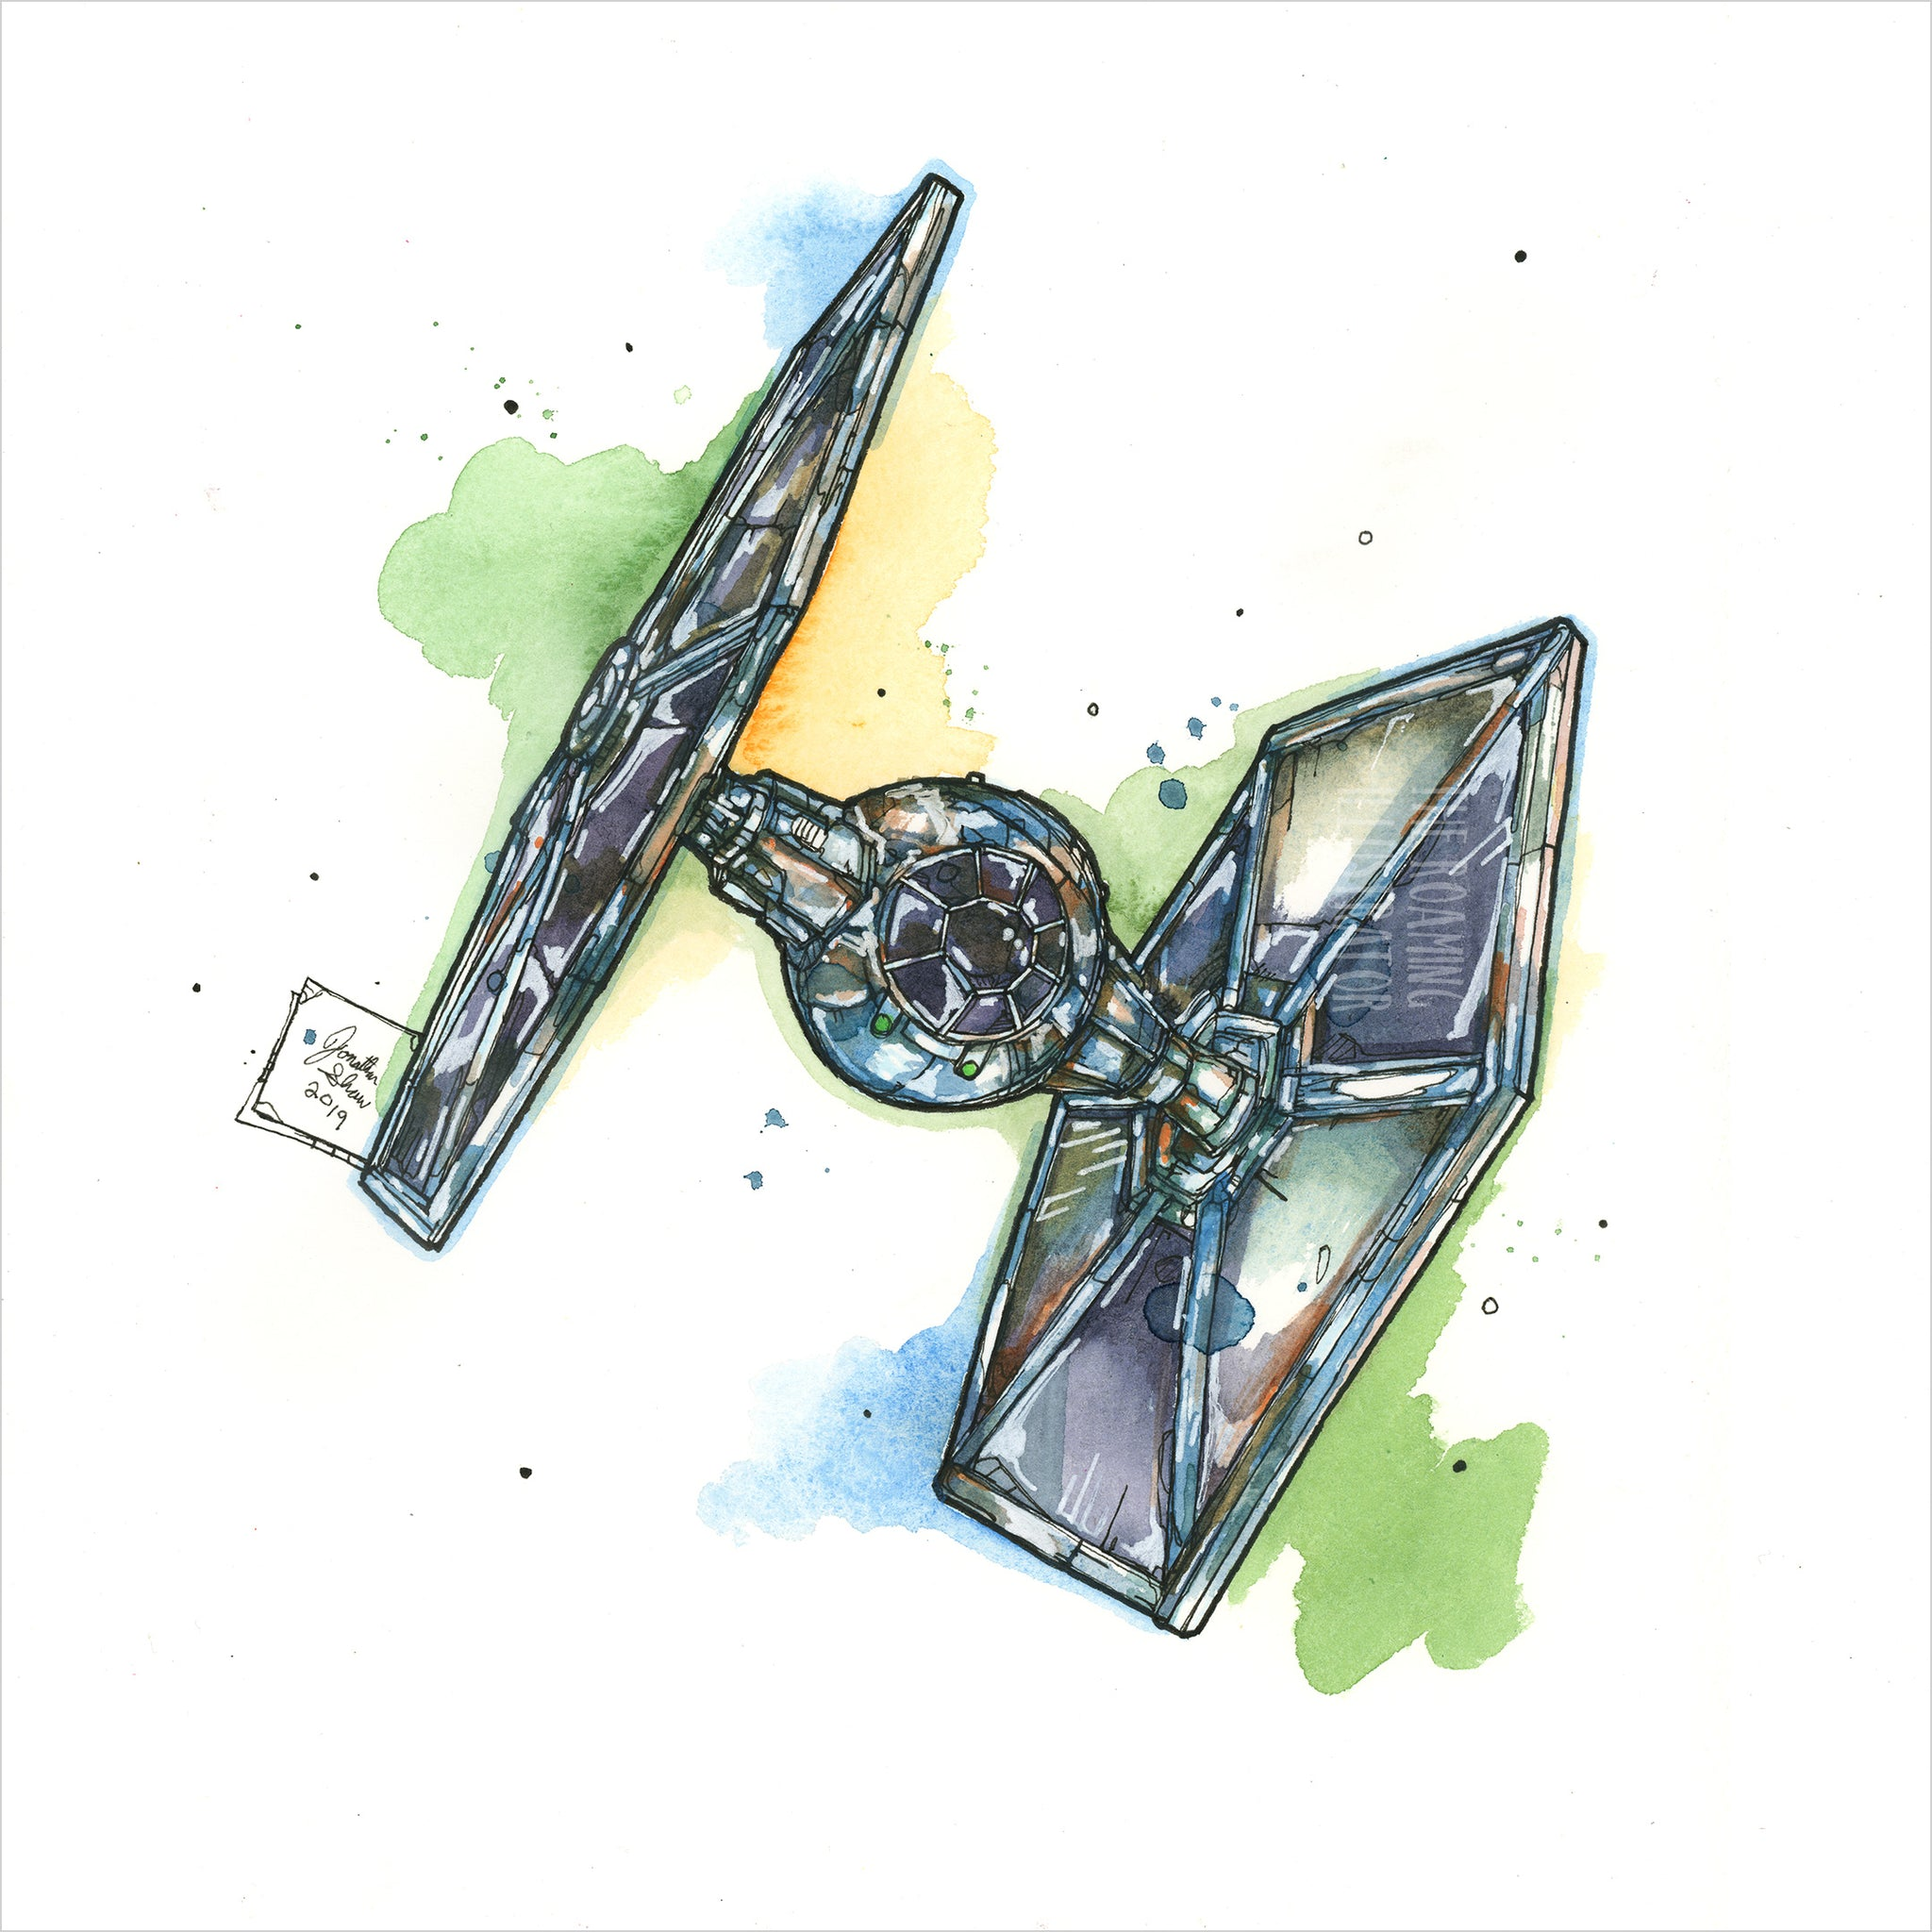 """TIE Fighter"" - 8x10 Reproduction Print"